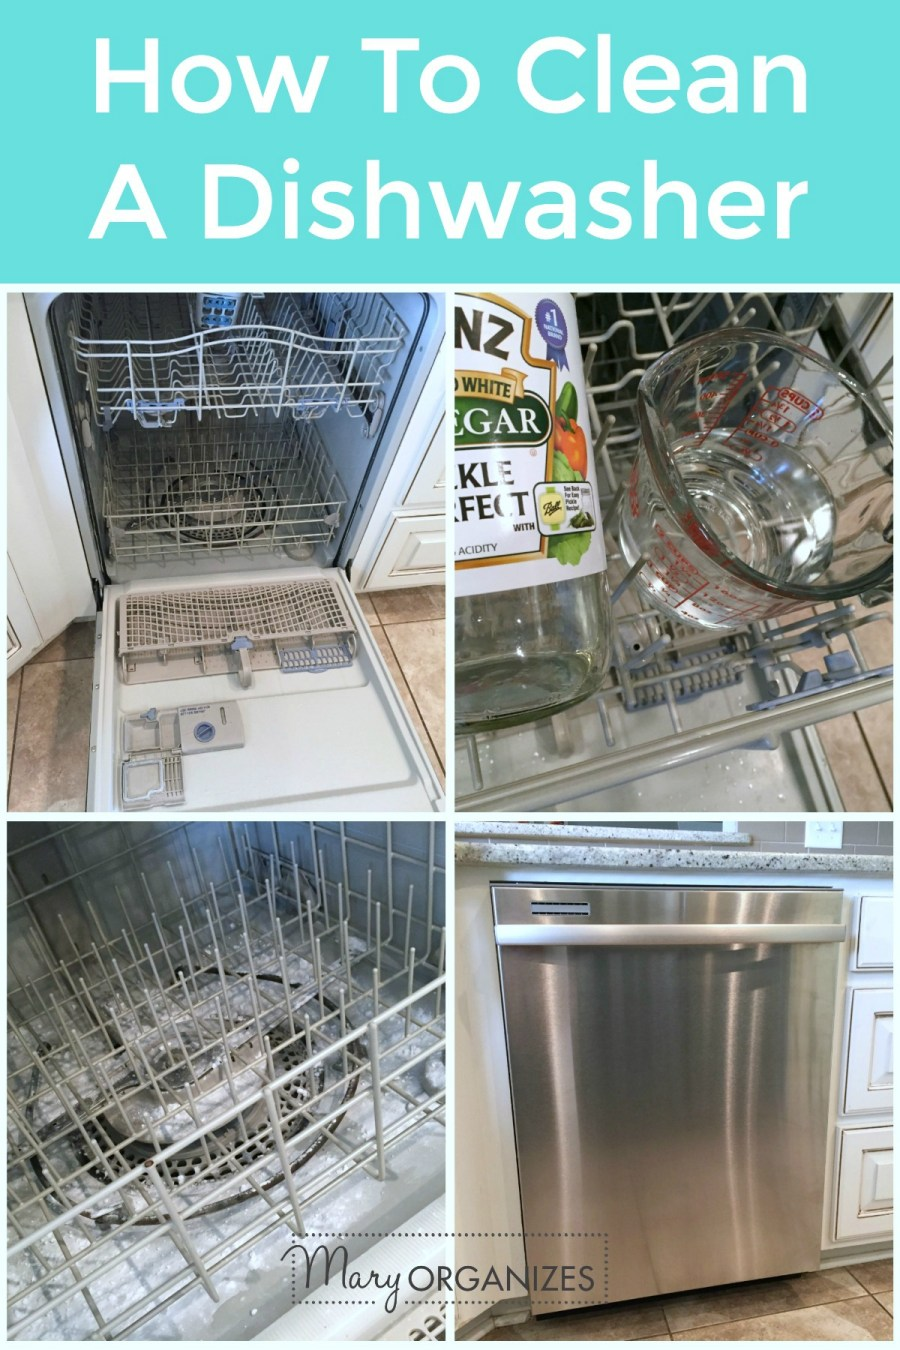 How To Clean A Dishwasher - Mary Organizes -v